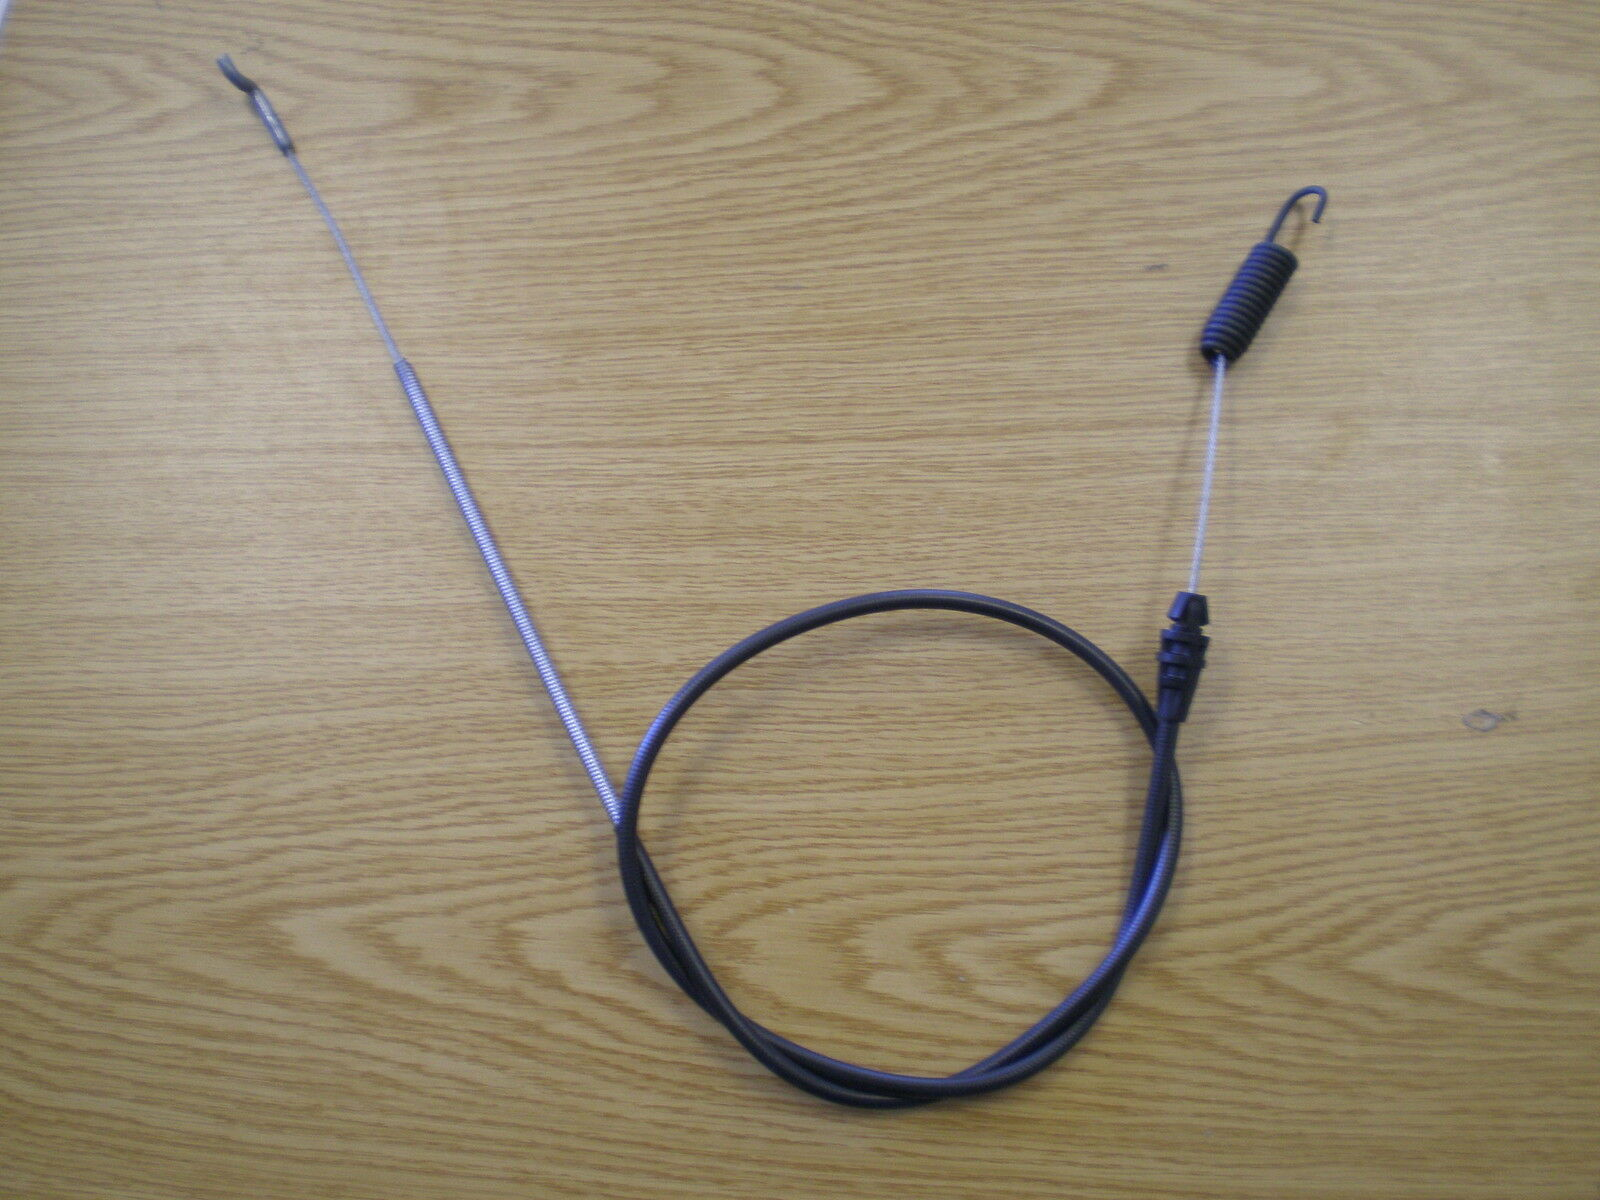 New Oem Toro 22 Lawnmower Traction Cable 115 8435 1 Of 1free Shipping